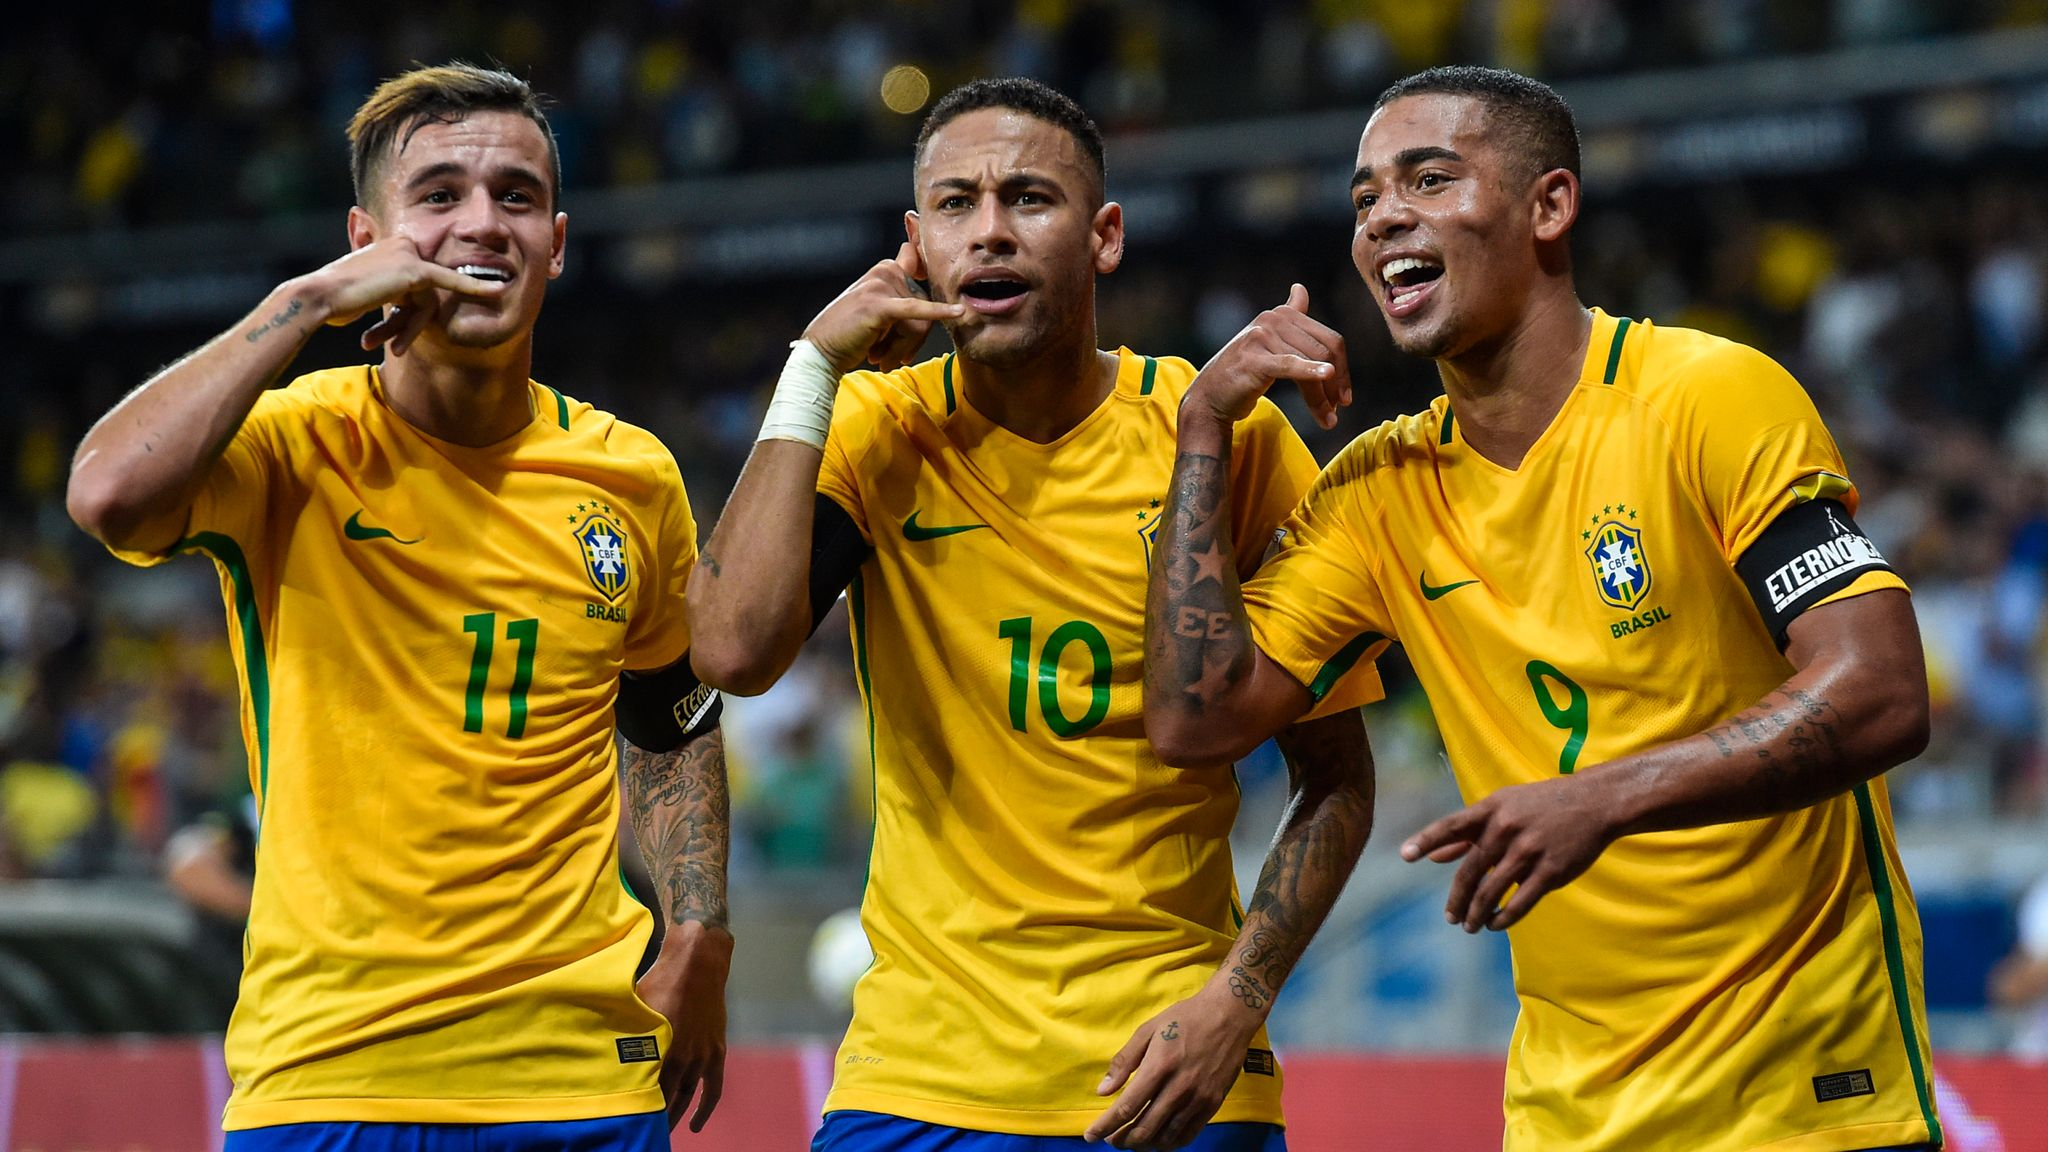 Peru brasil sport bet how to find old sports betting lines